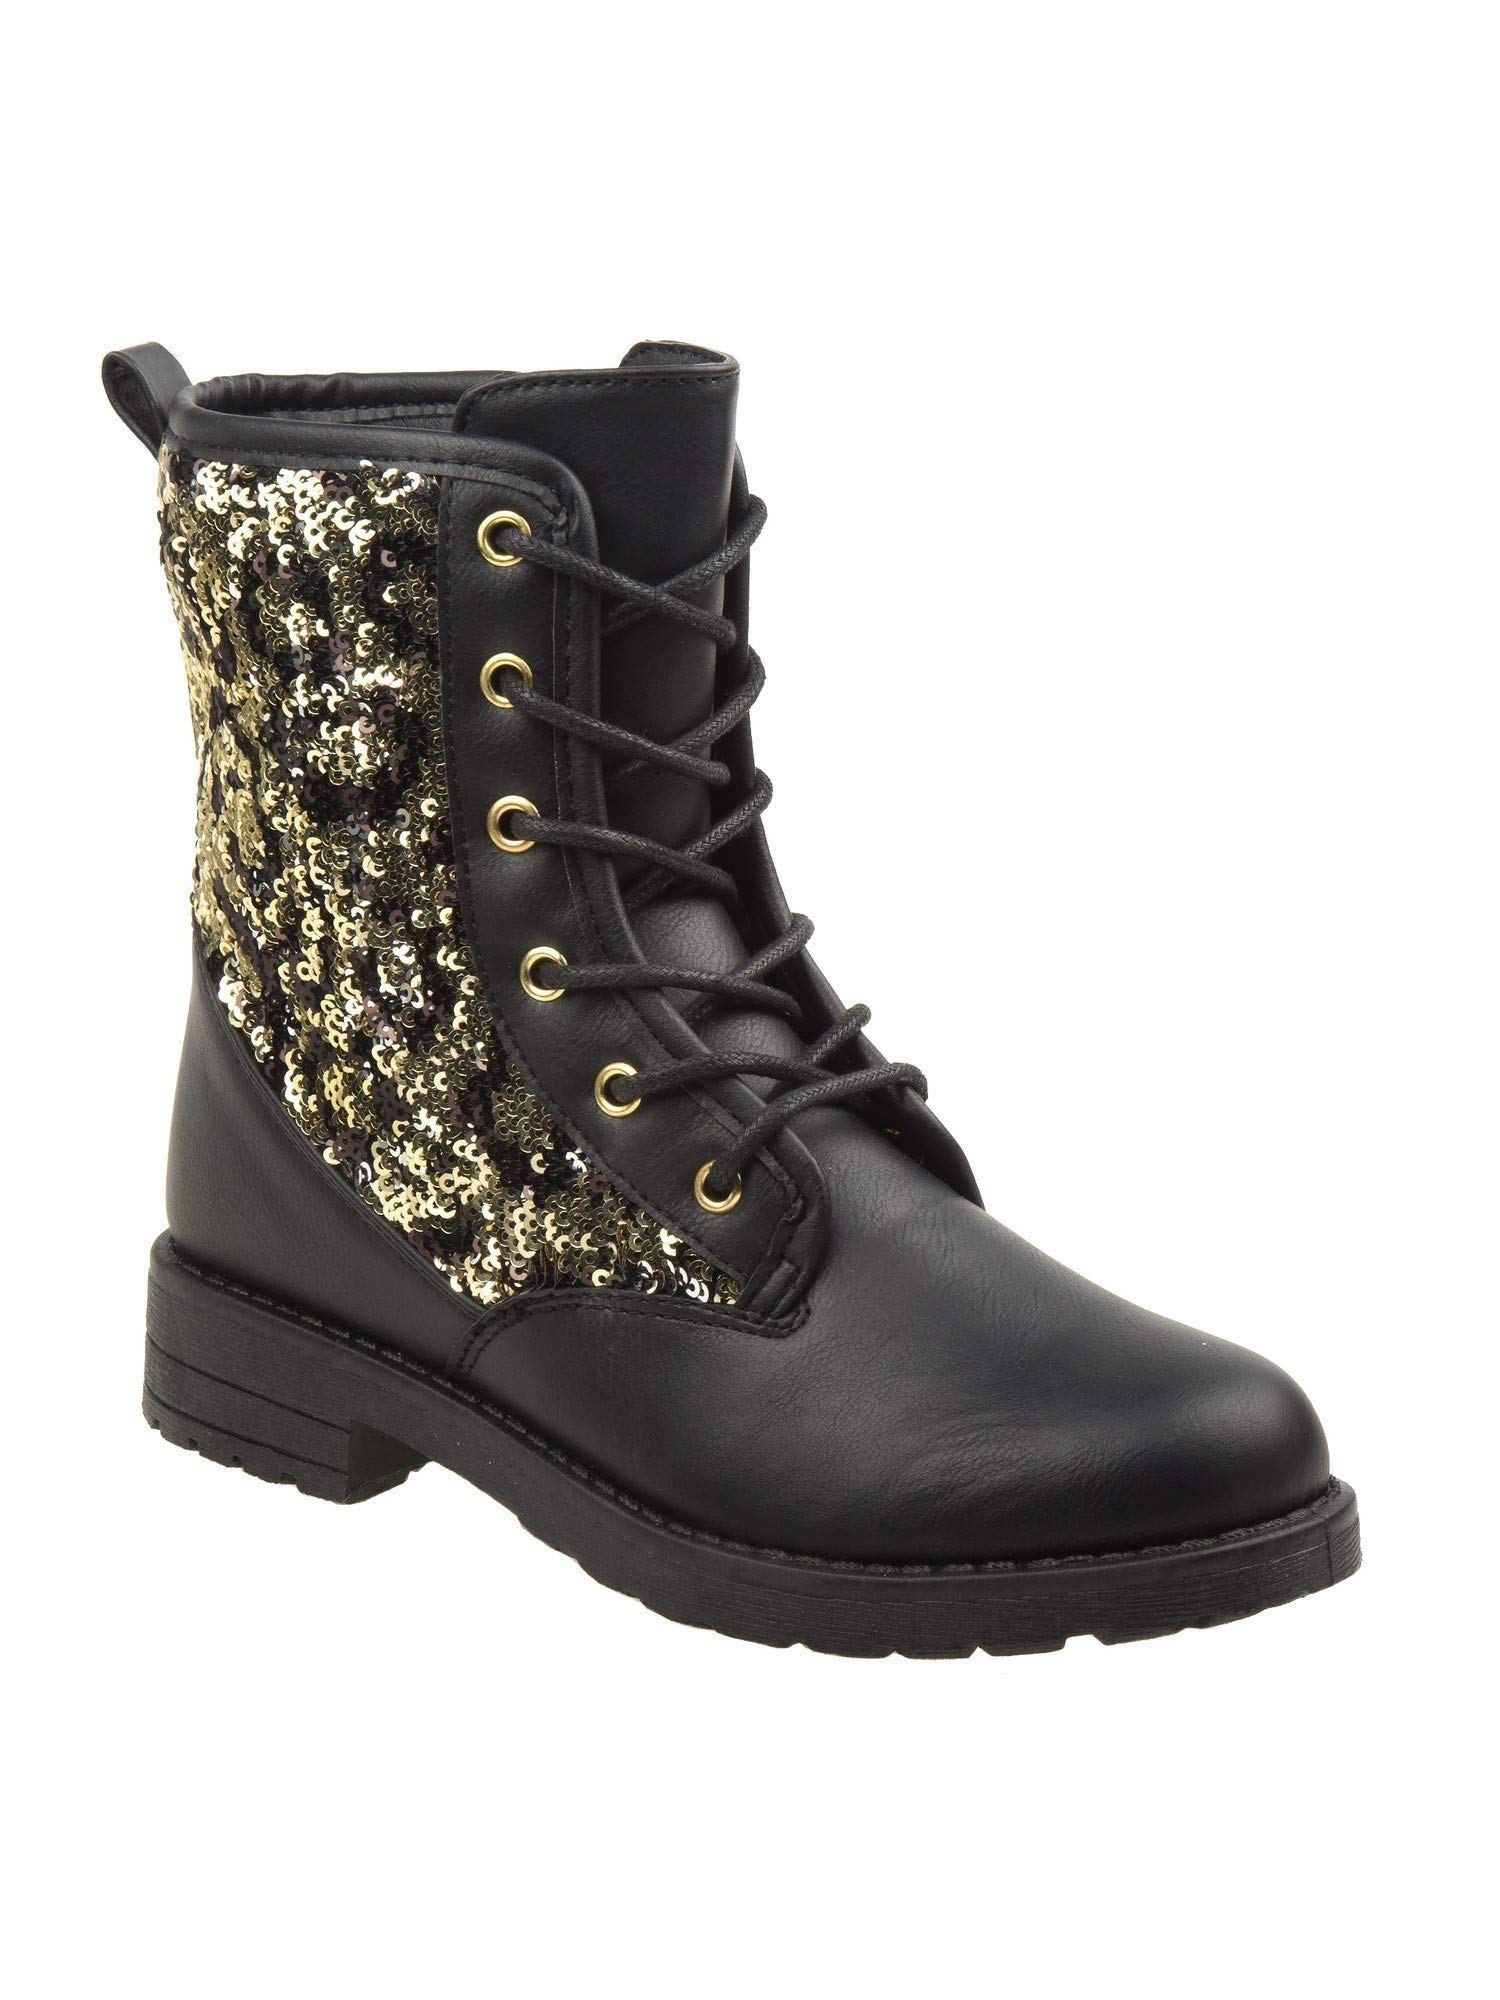 Kensie Girls Black Sparkle Sequined Panel Lace-Up Combat Boots 2 Kids